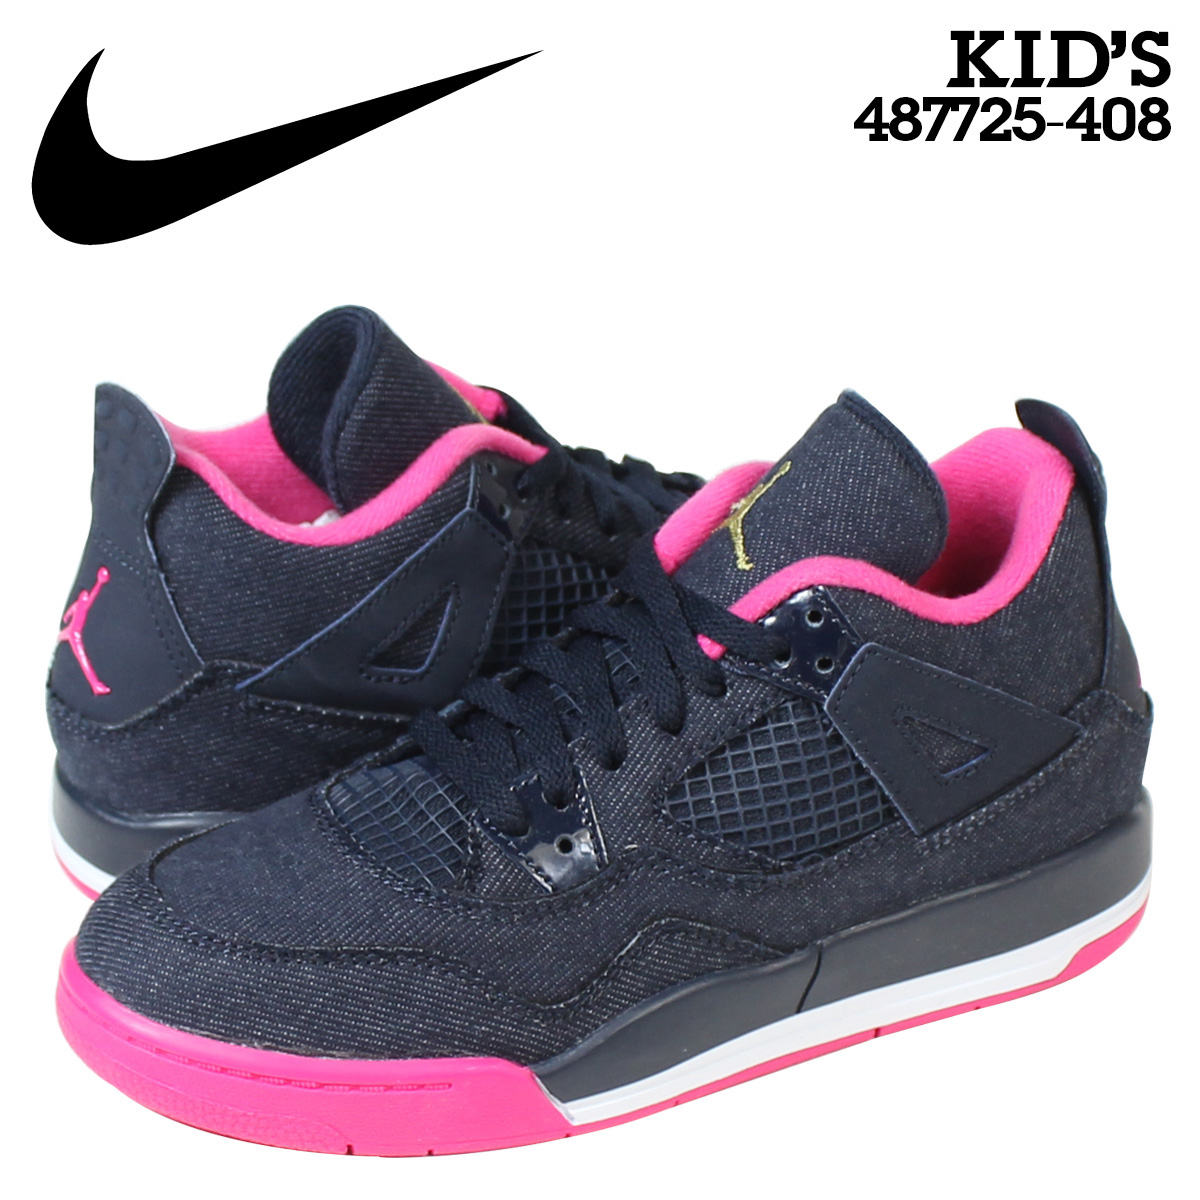 best service 2ac67 e7e12 NIKE Nike Air Jordan sneakers kids AIR JORDAN 4 RETRO PS DENIM Air Jordan 4  nostalgic denim 487,725-408 shoes black black